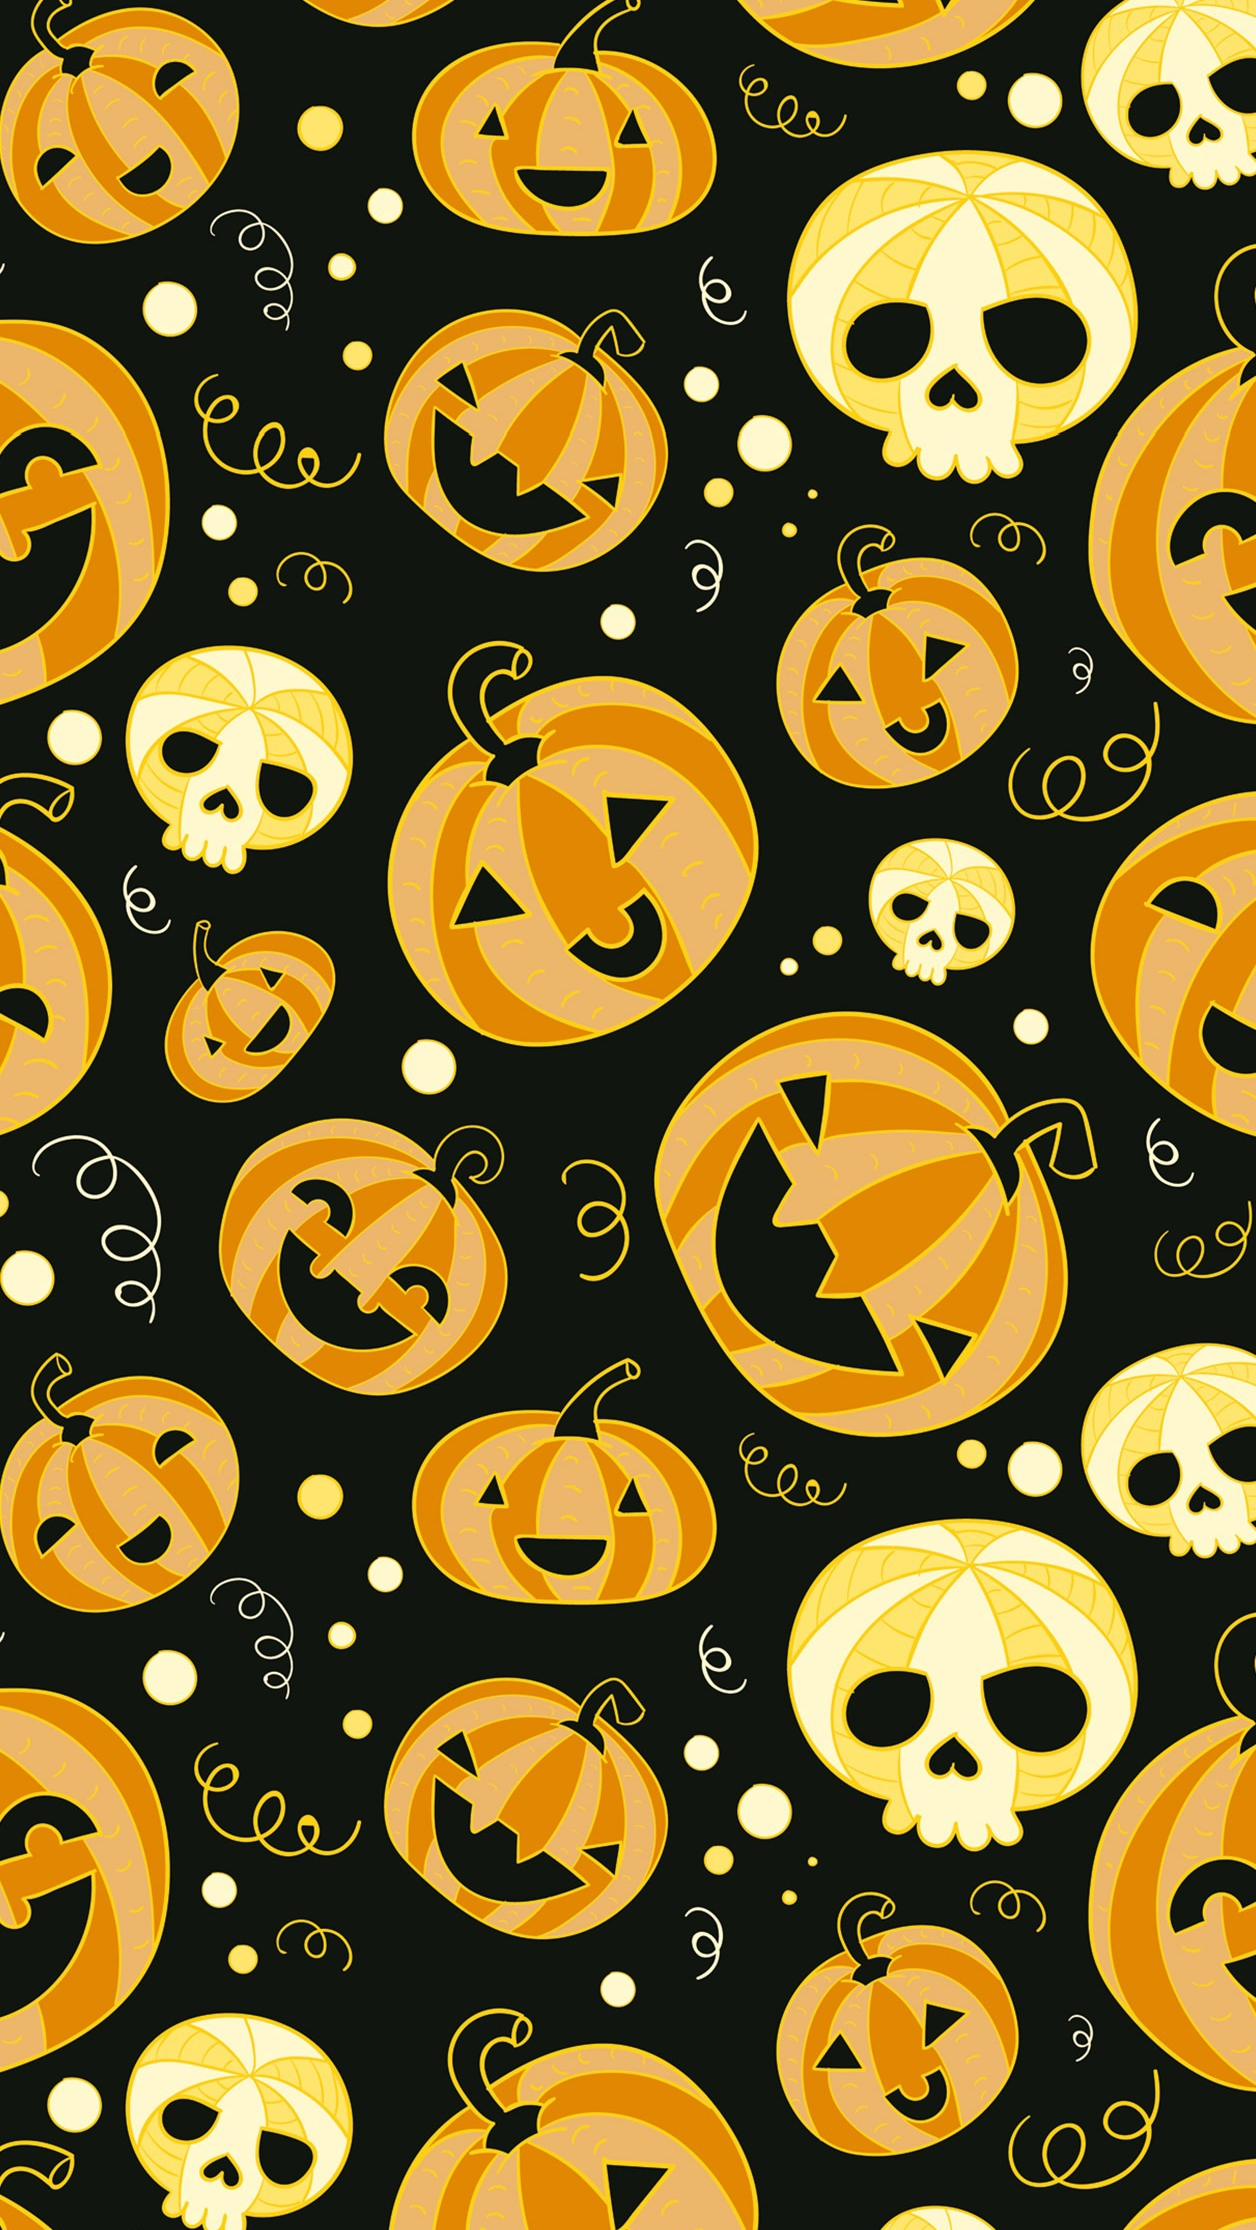 Fall Themed Iphone Wallpapers Halloween Funny Pumpkins Iphone Wallpaper Iphone Wallpapers